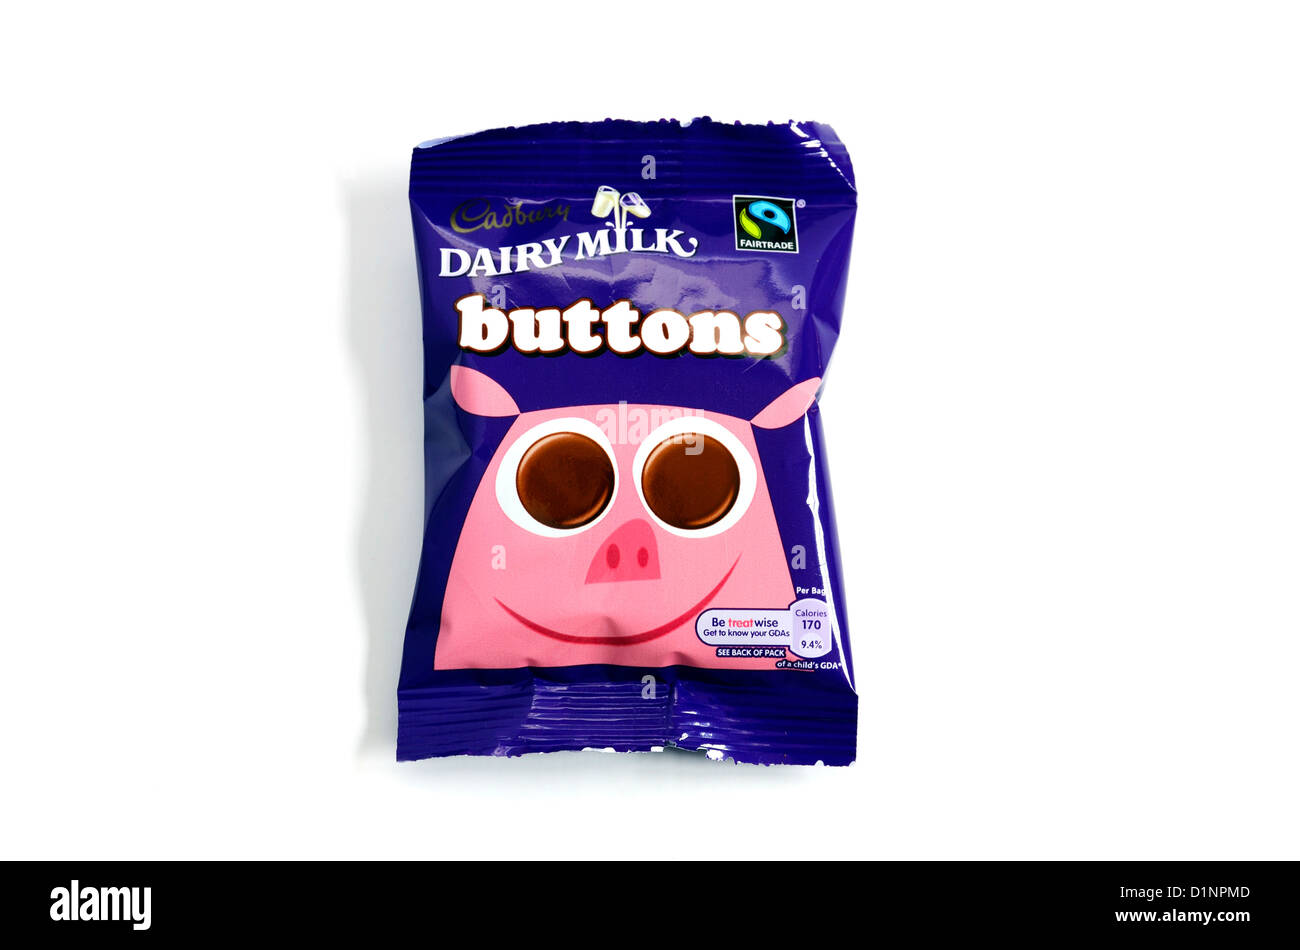 a packet of cadbury chocolate buttons - Stock Image